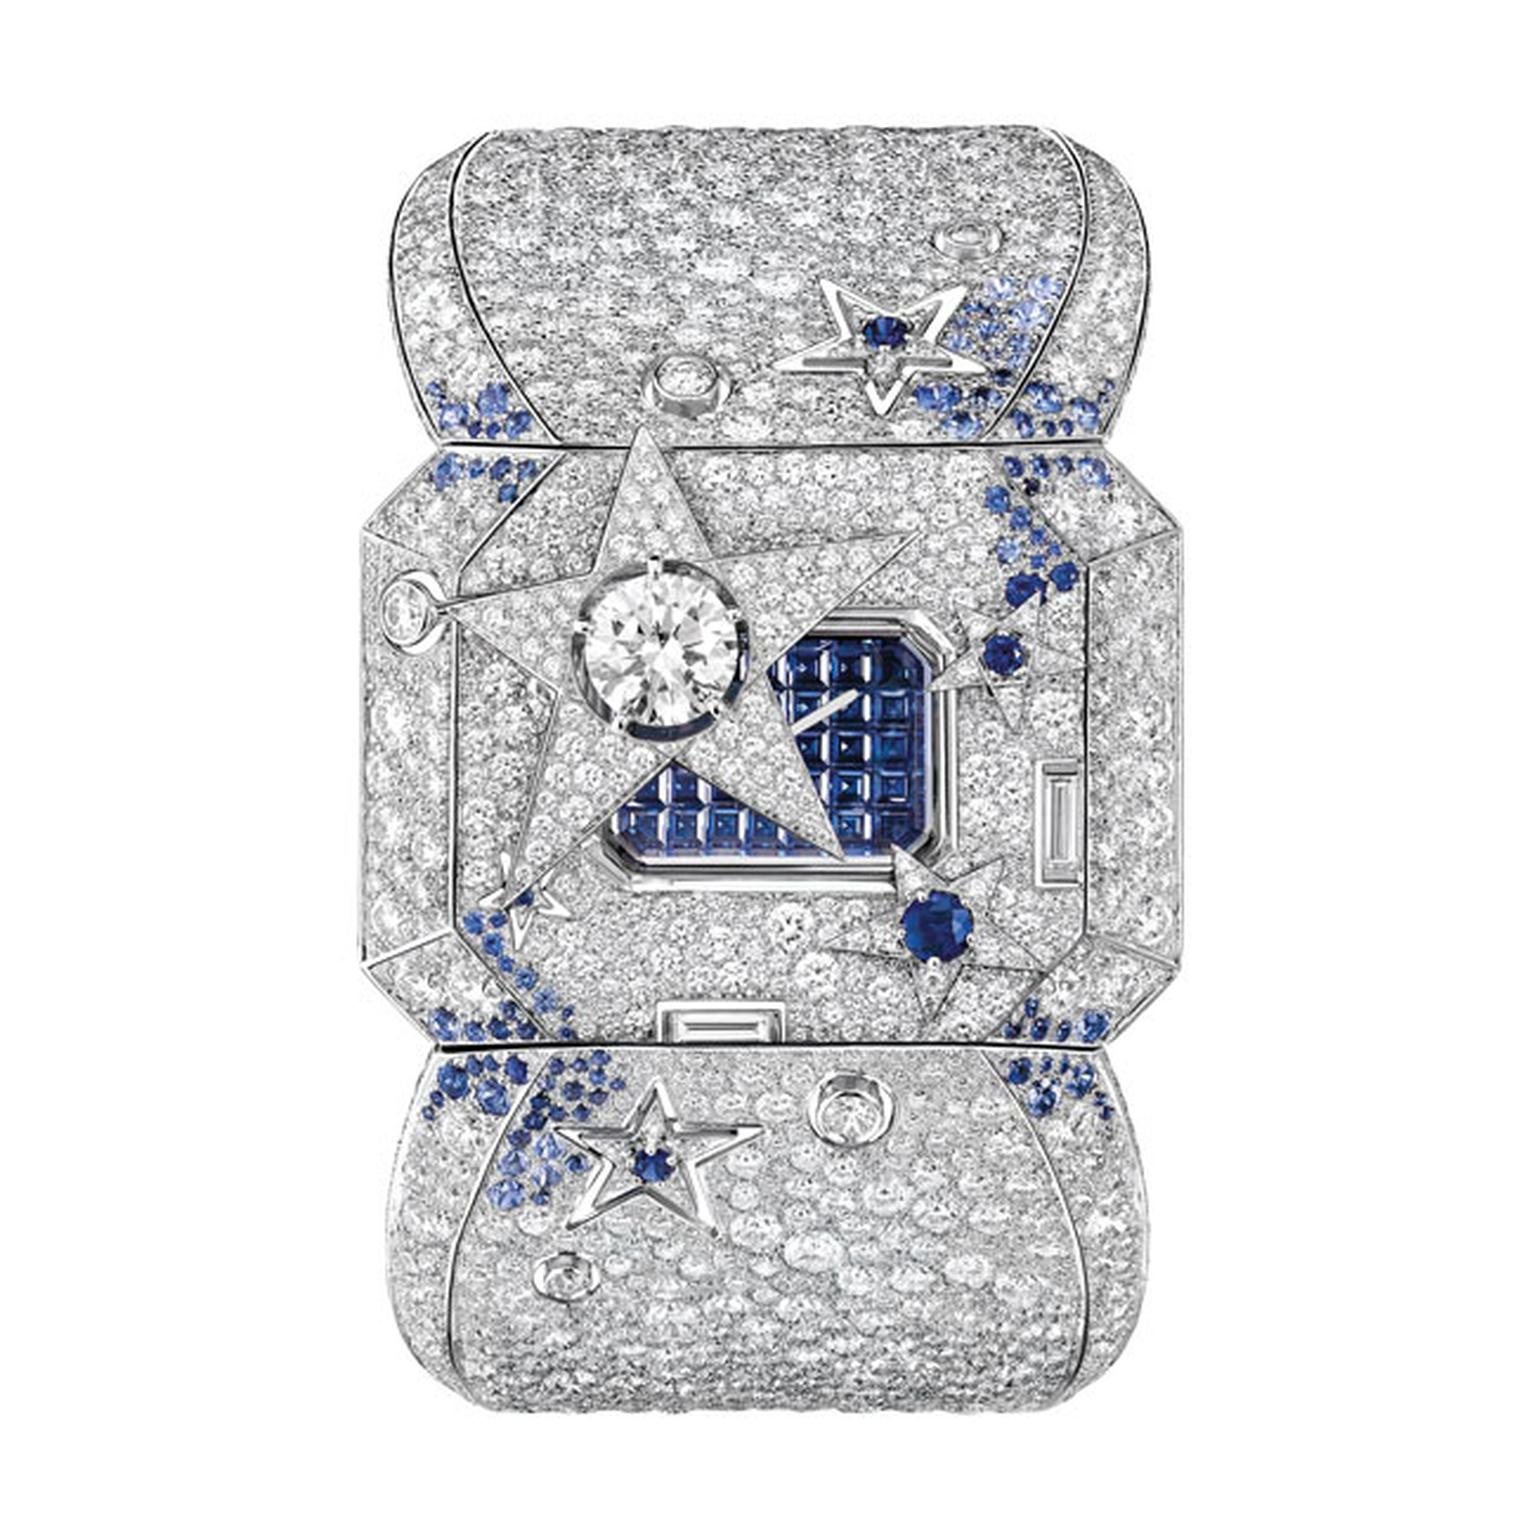 Chanel high jewellery Cométe secret diamond watch_main